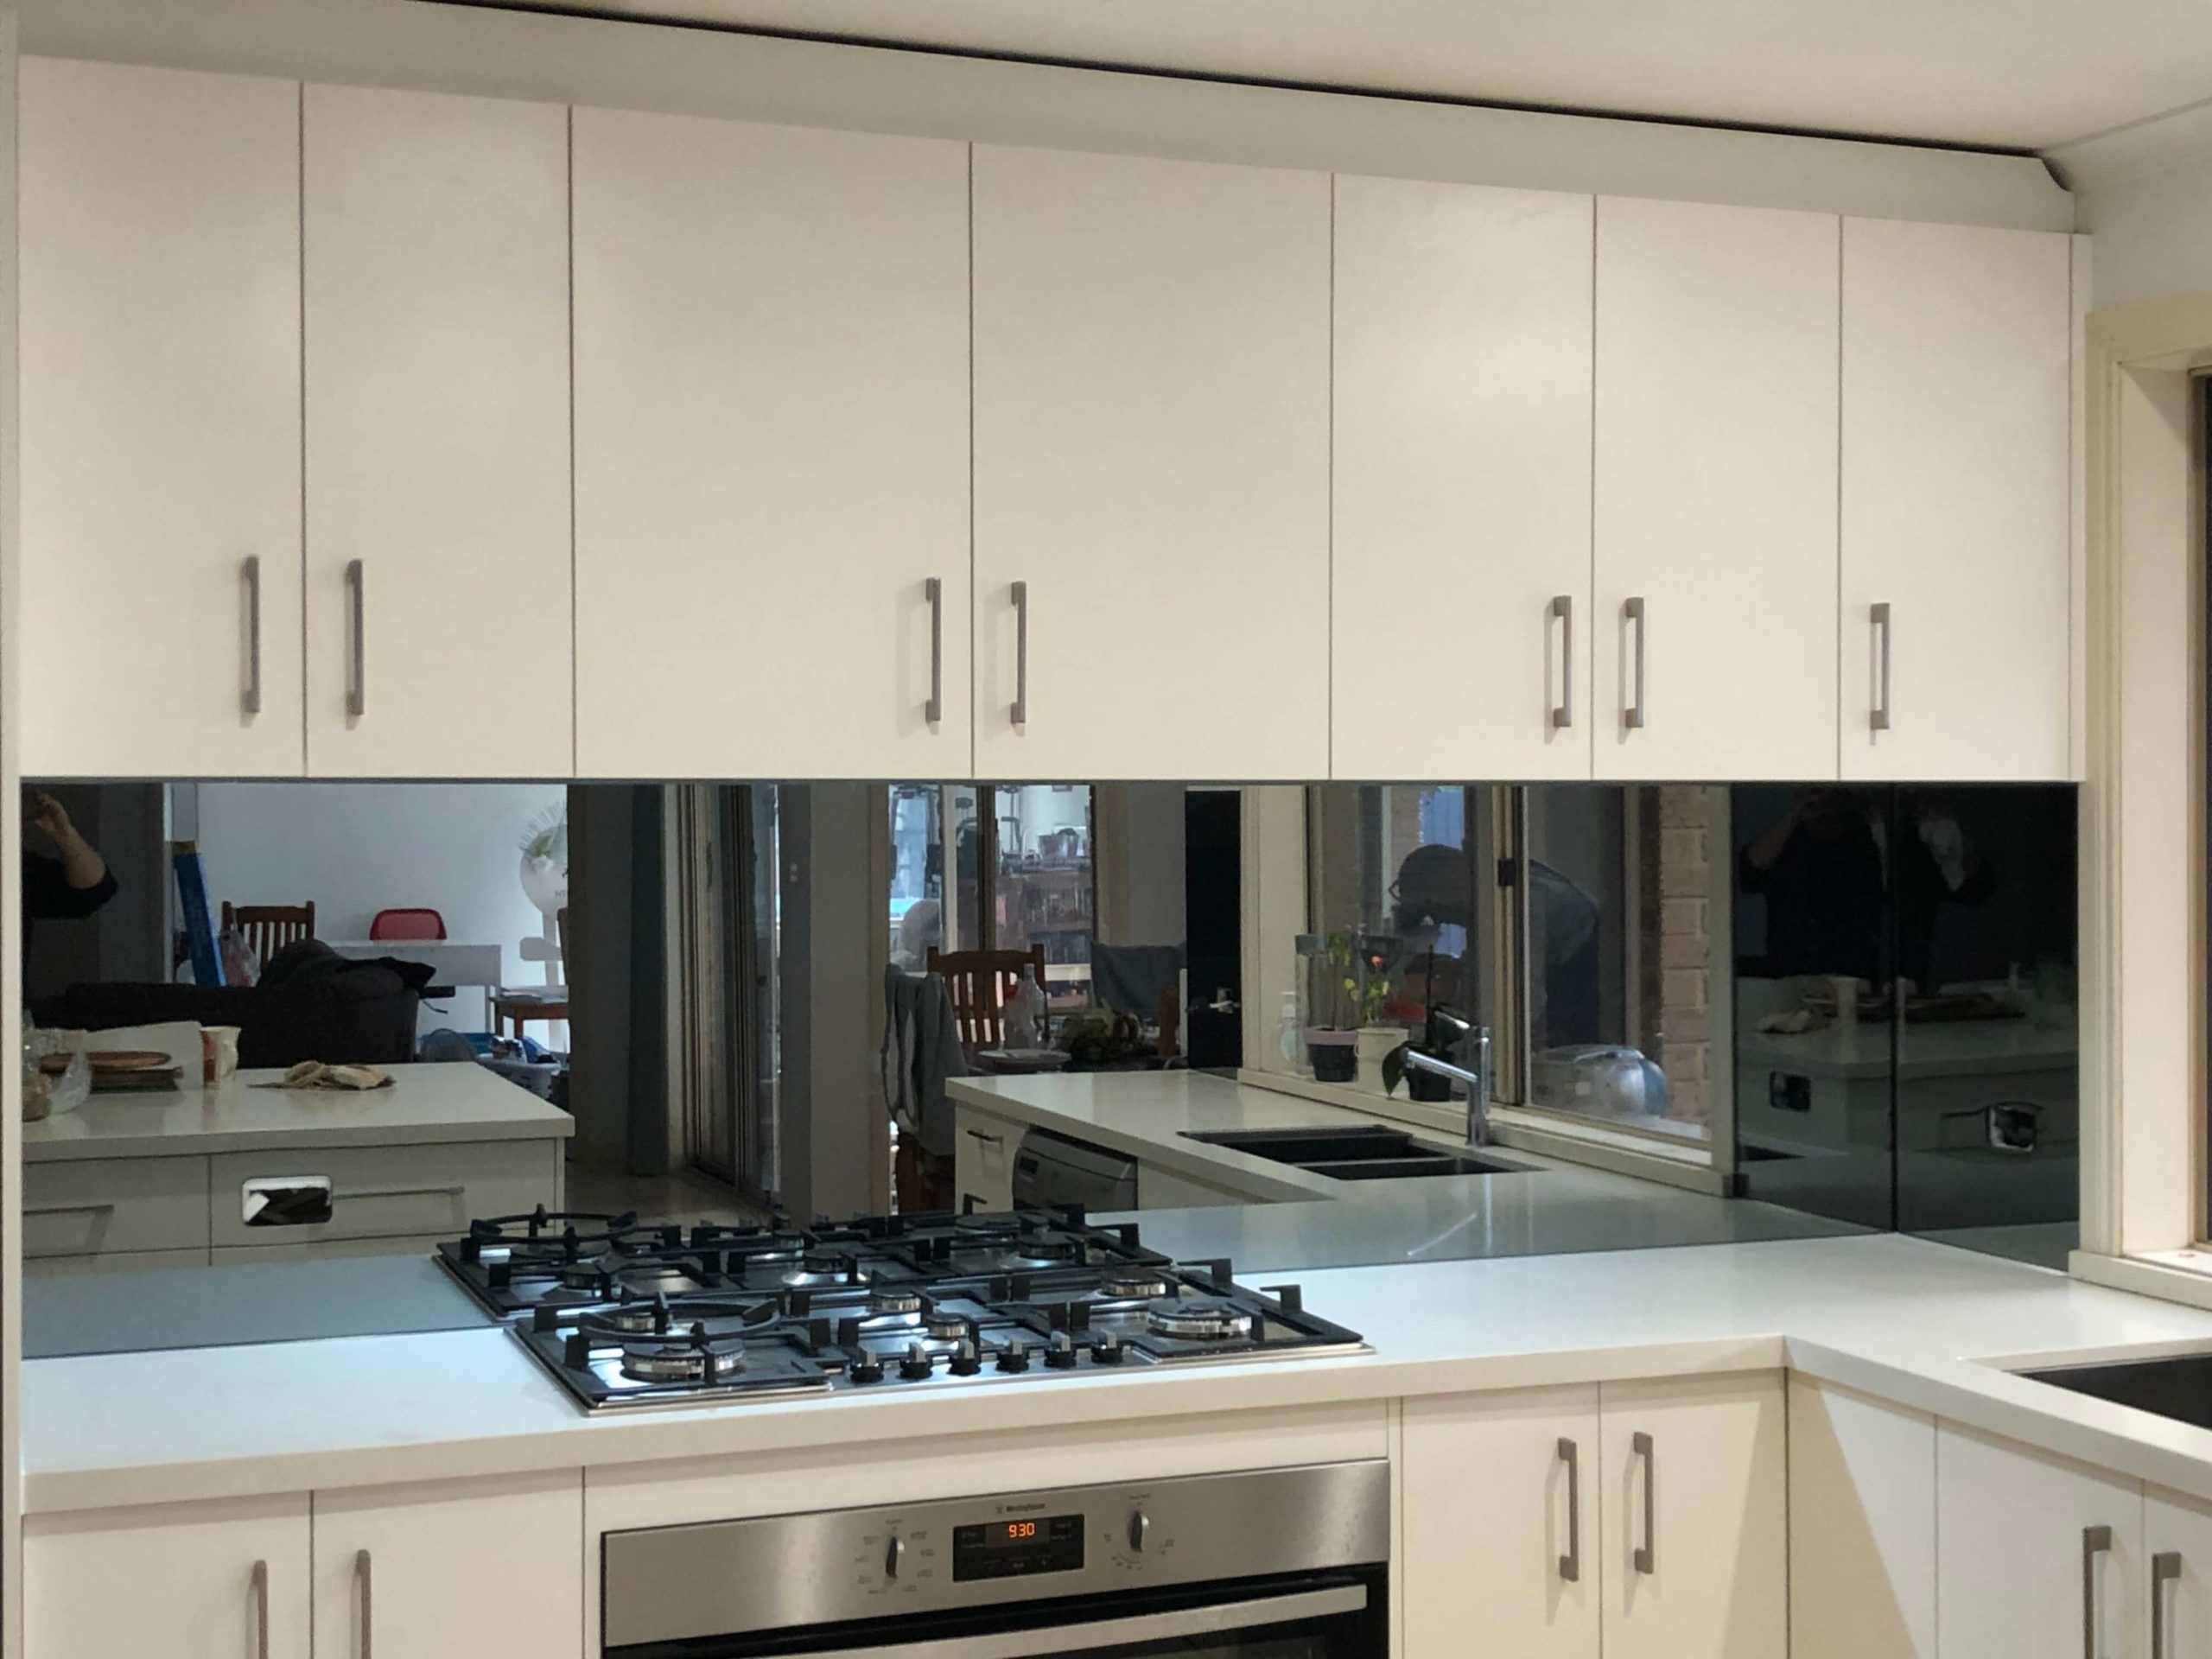 Mirrorstar Reflective Glass Splashback